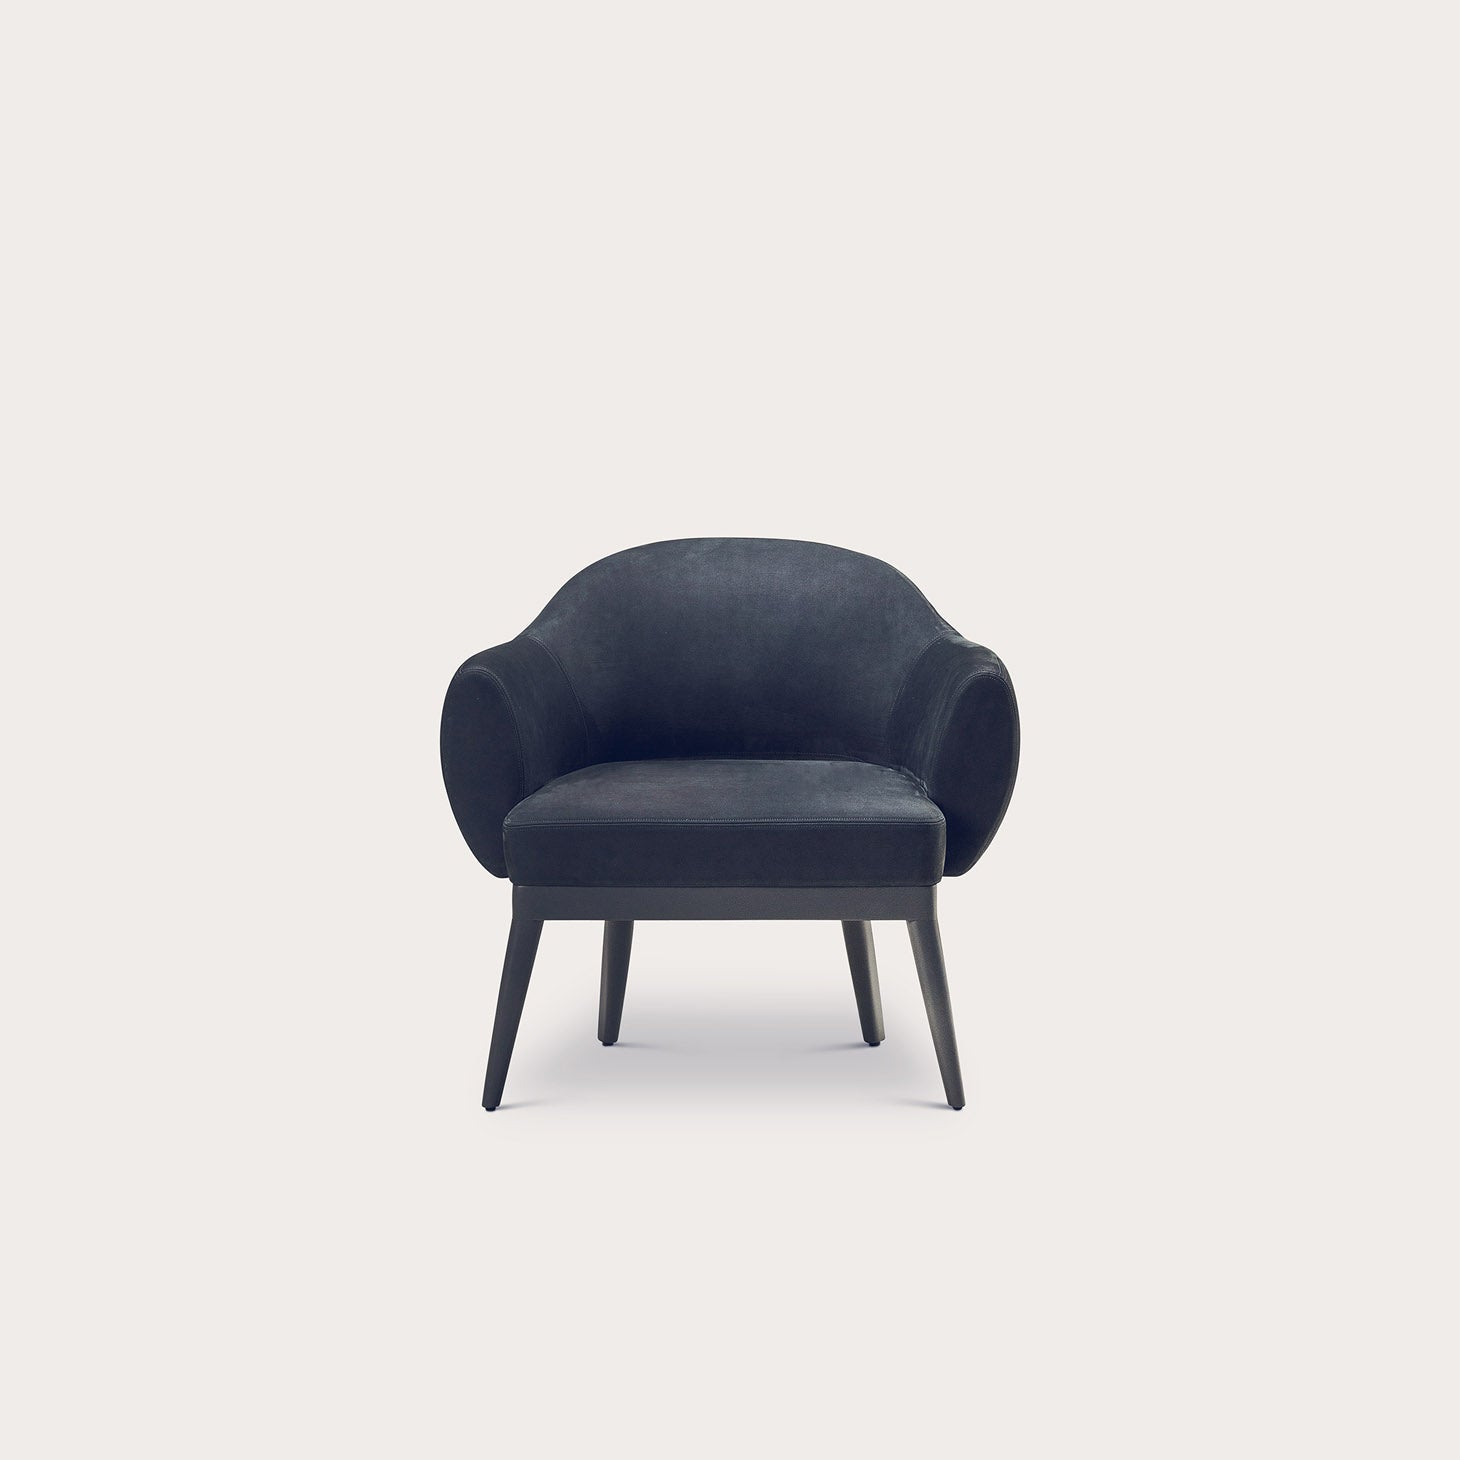 GUMI Bergere Seating Bruno Moinard Designer Furniture Sku: 773-240-10022